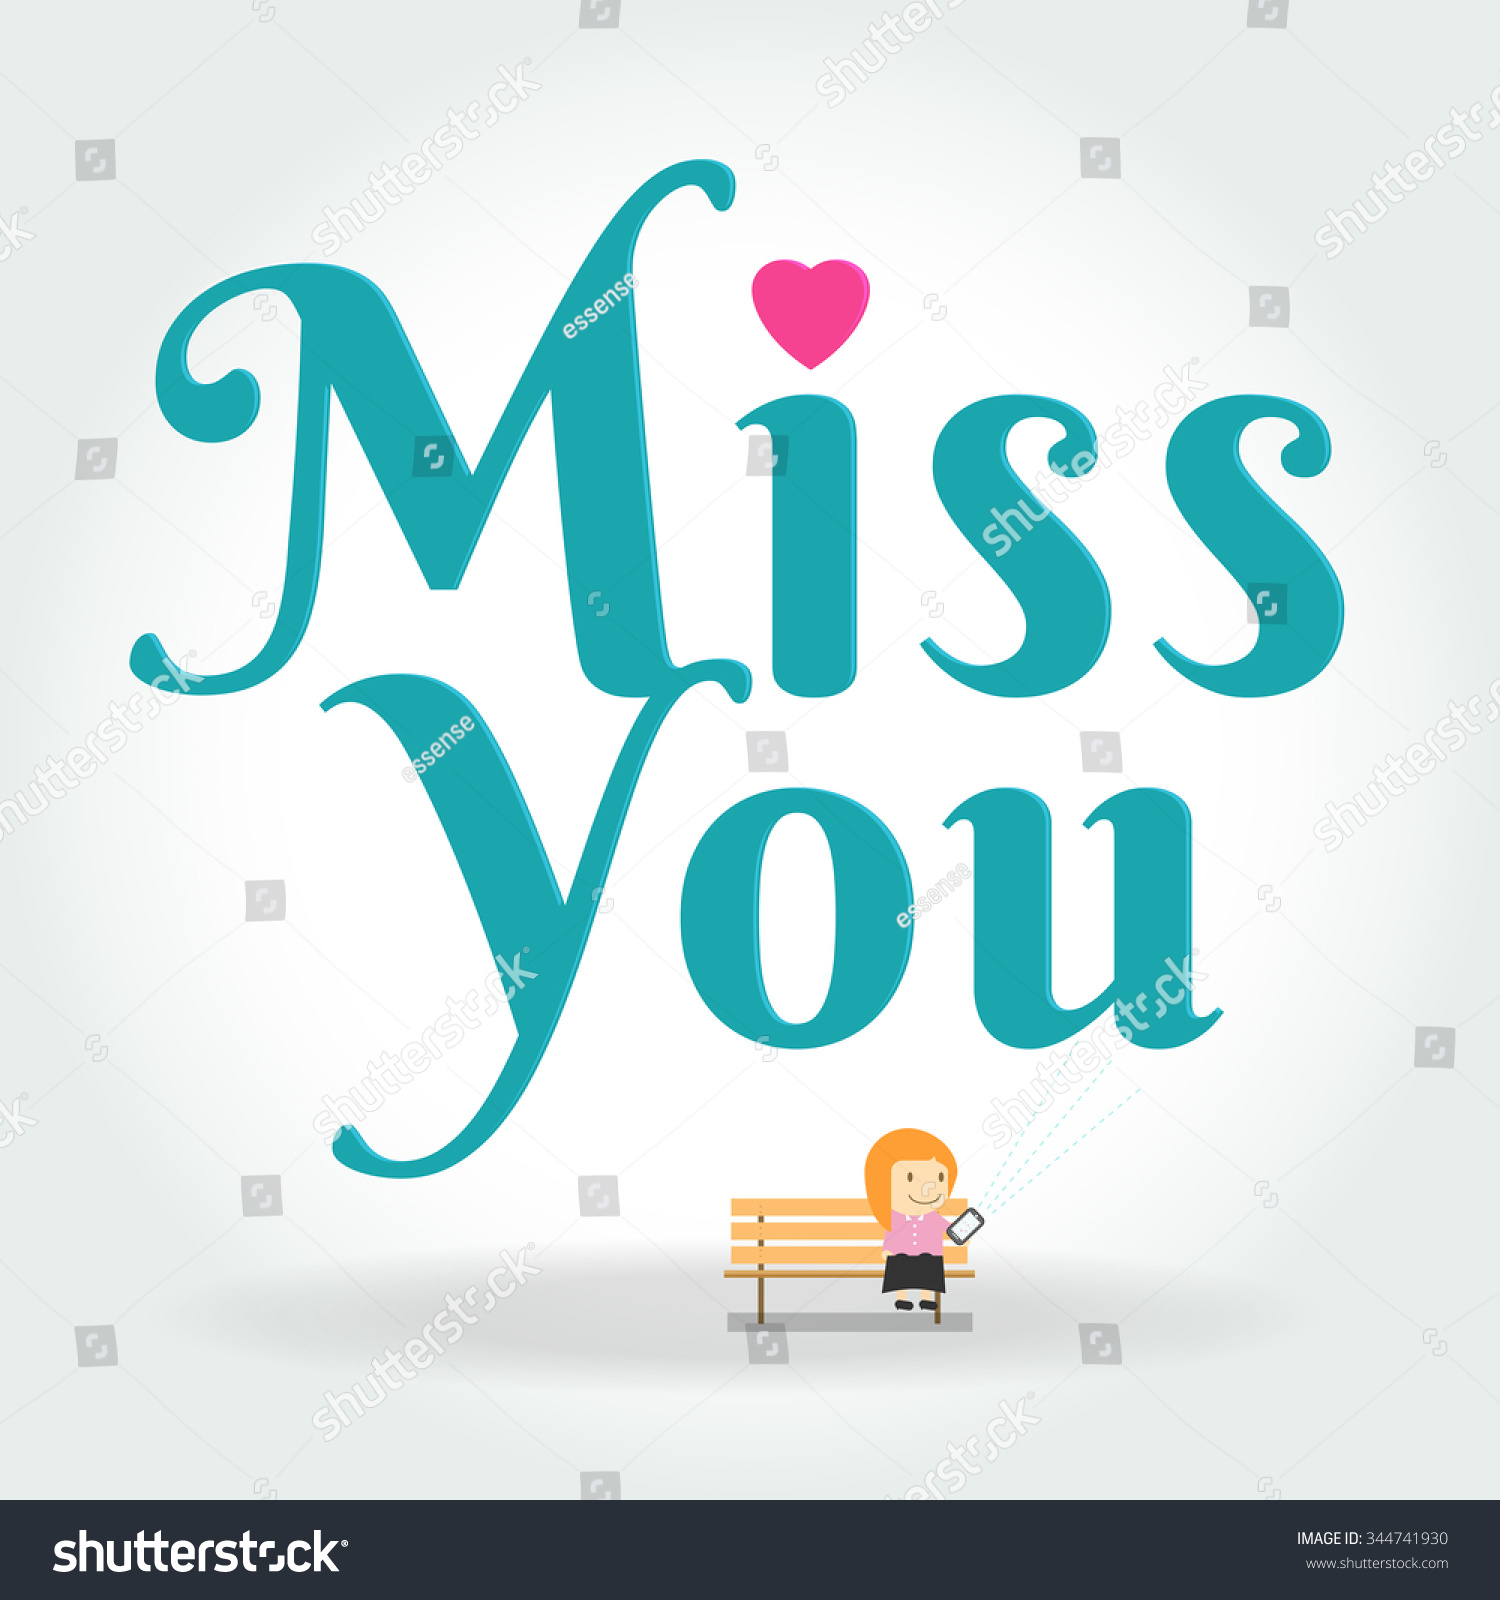 missing you essay By maury holliman / october 20, 2012 / creative essay, essays / no comments i miss you i miss you because you're gone all of you.